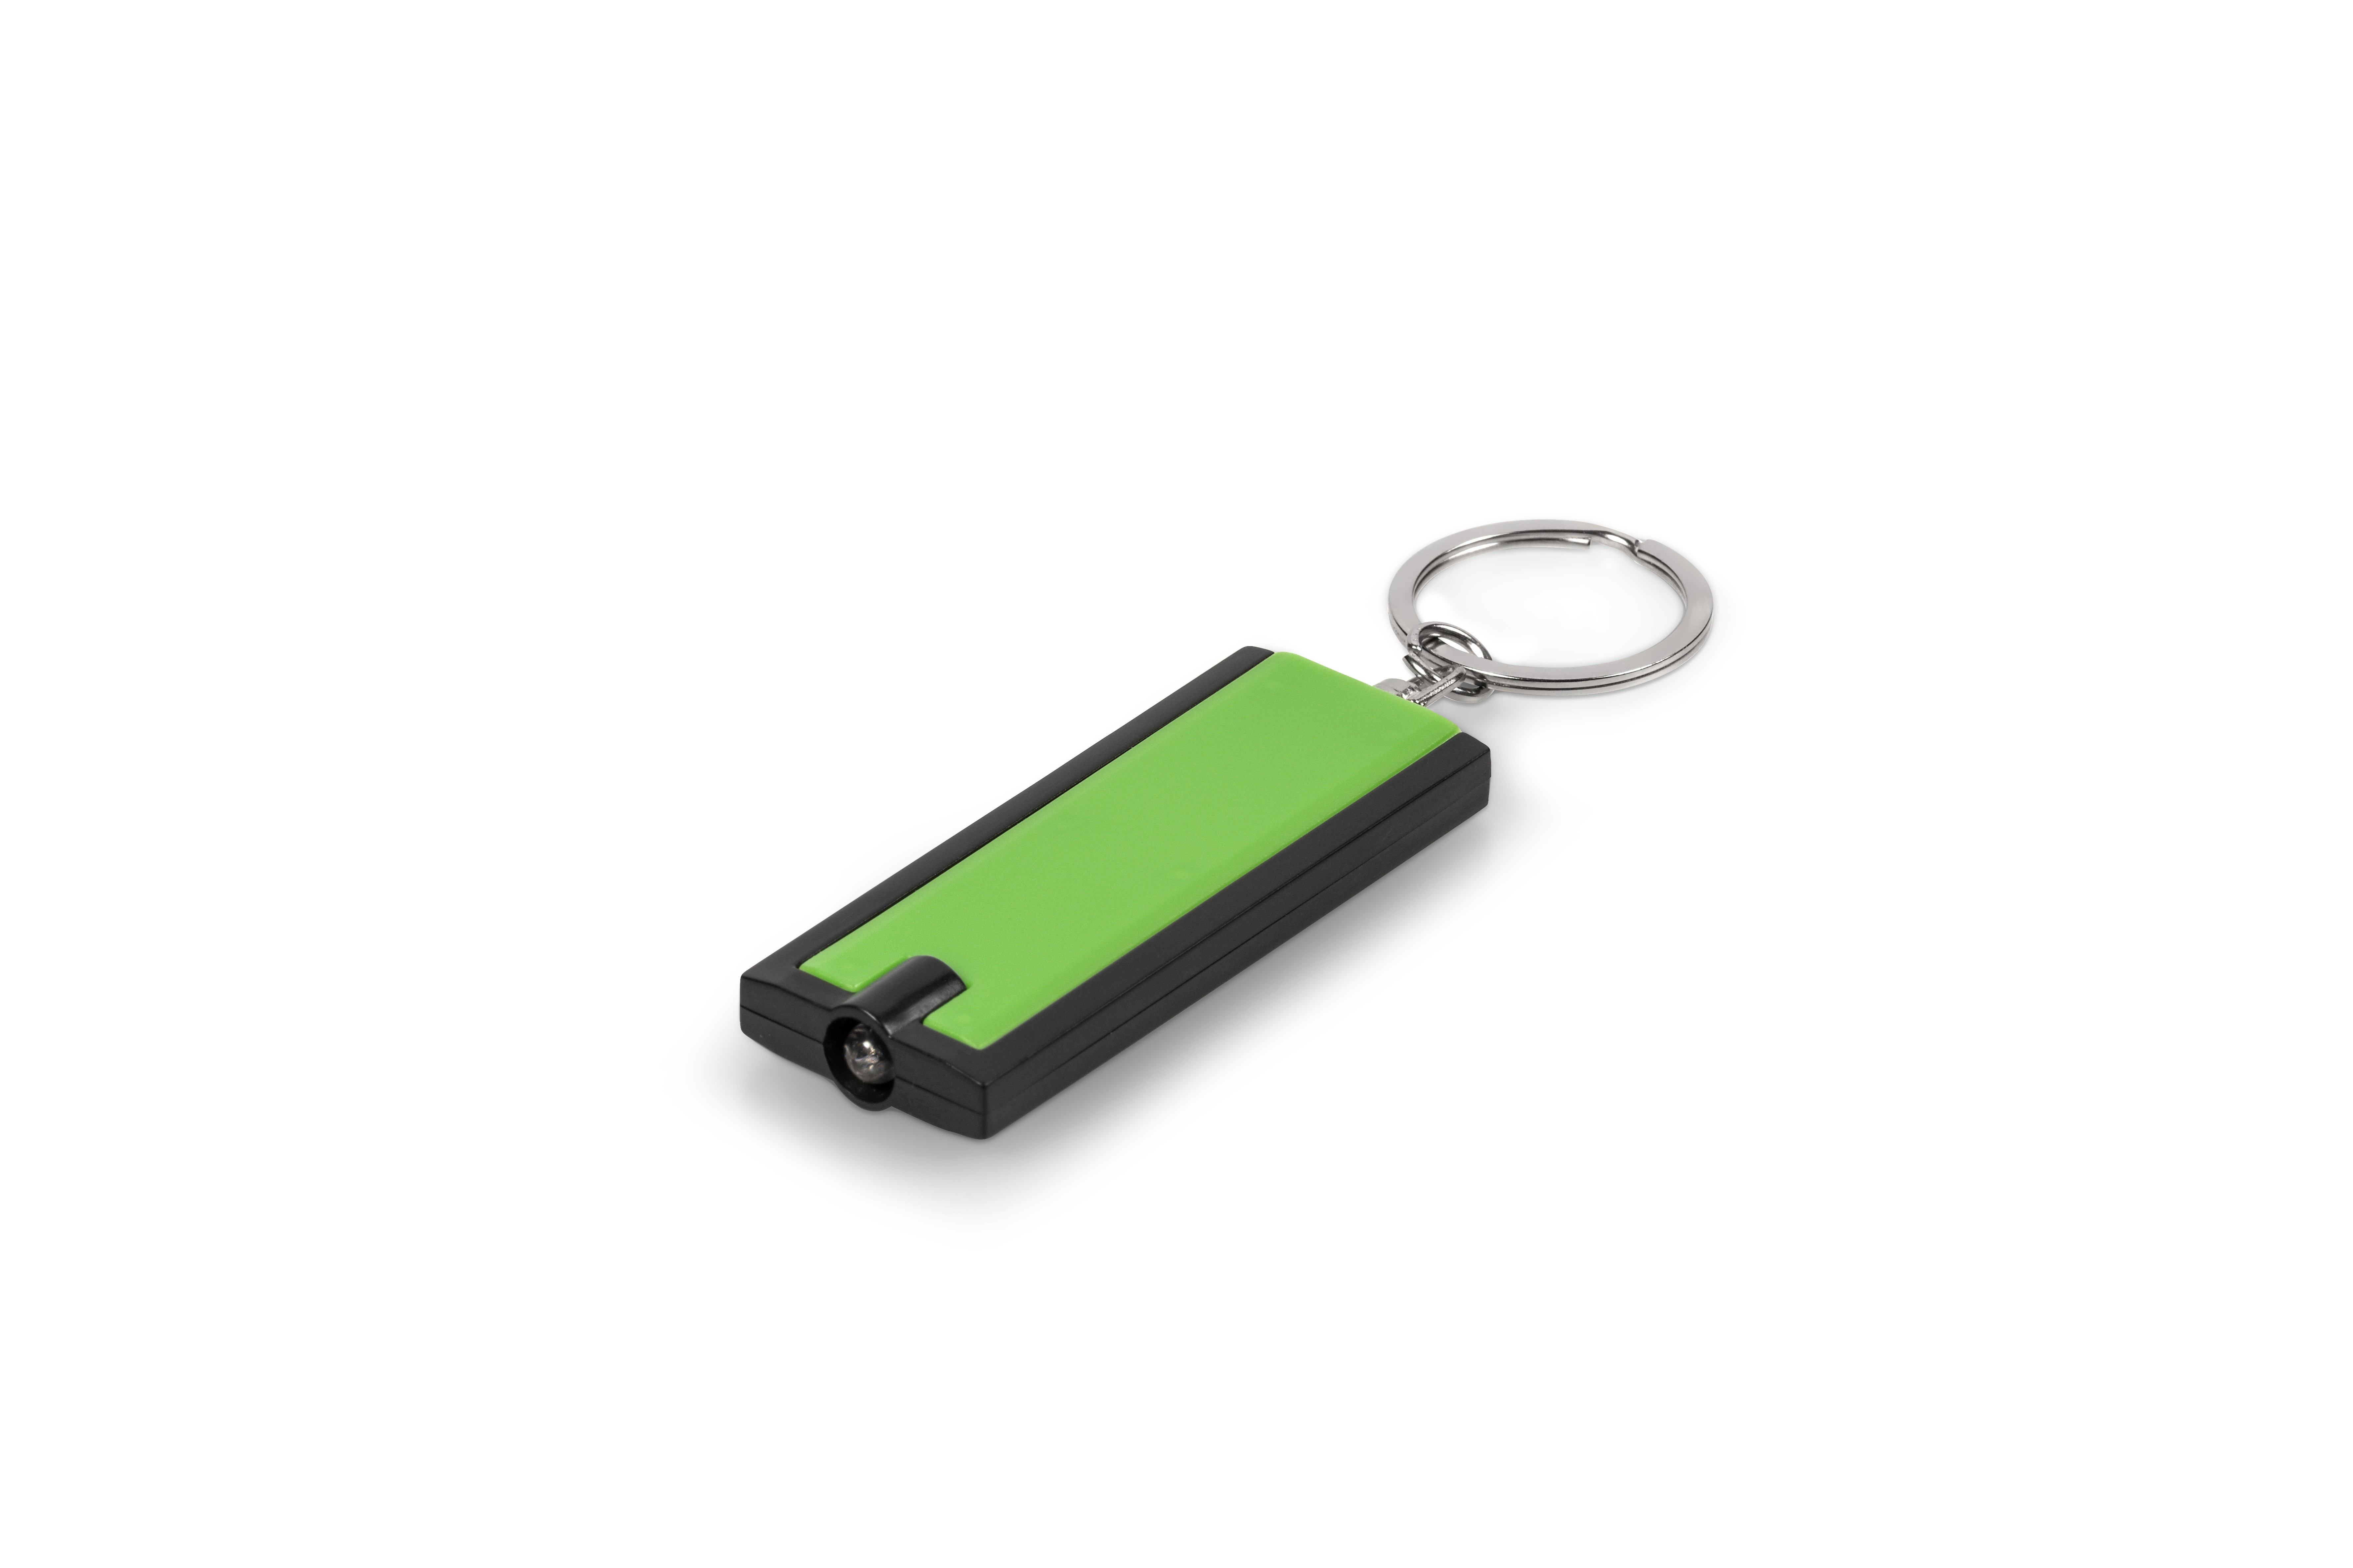 Flare Torch Keyholder - Lime Only